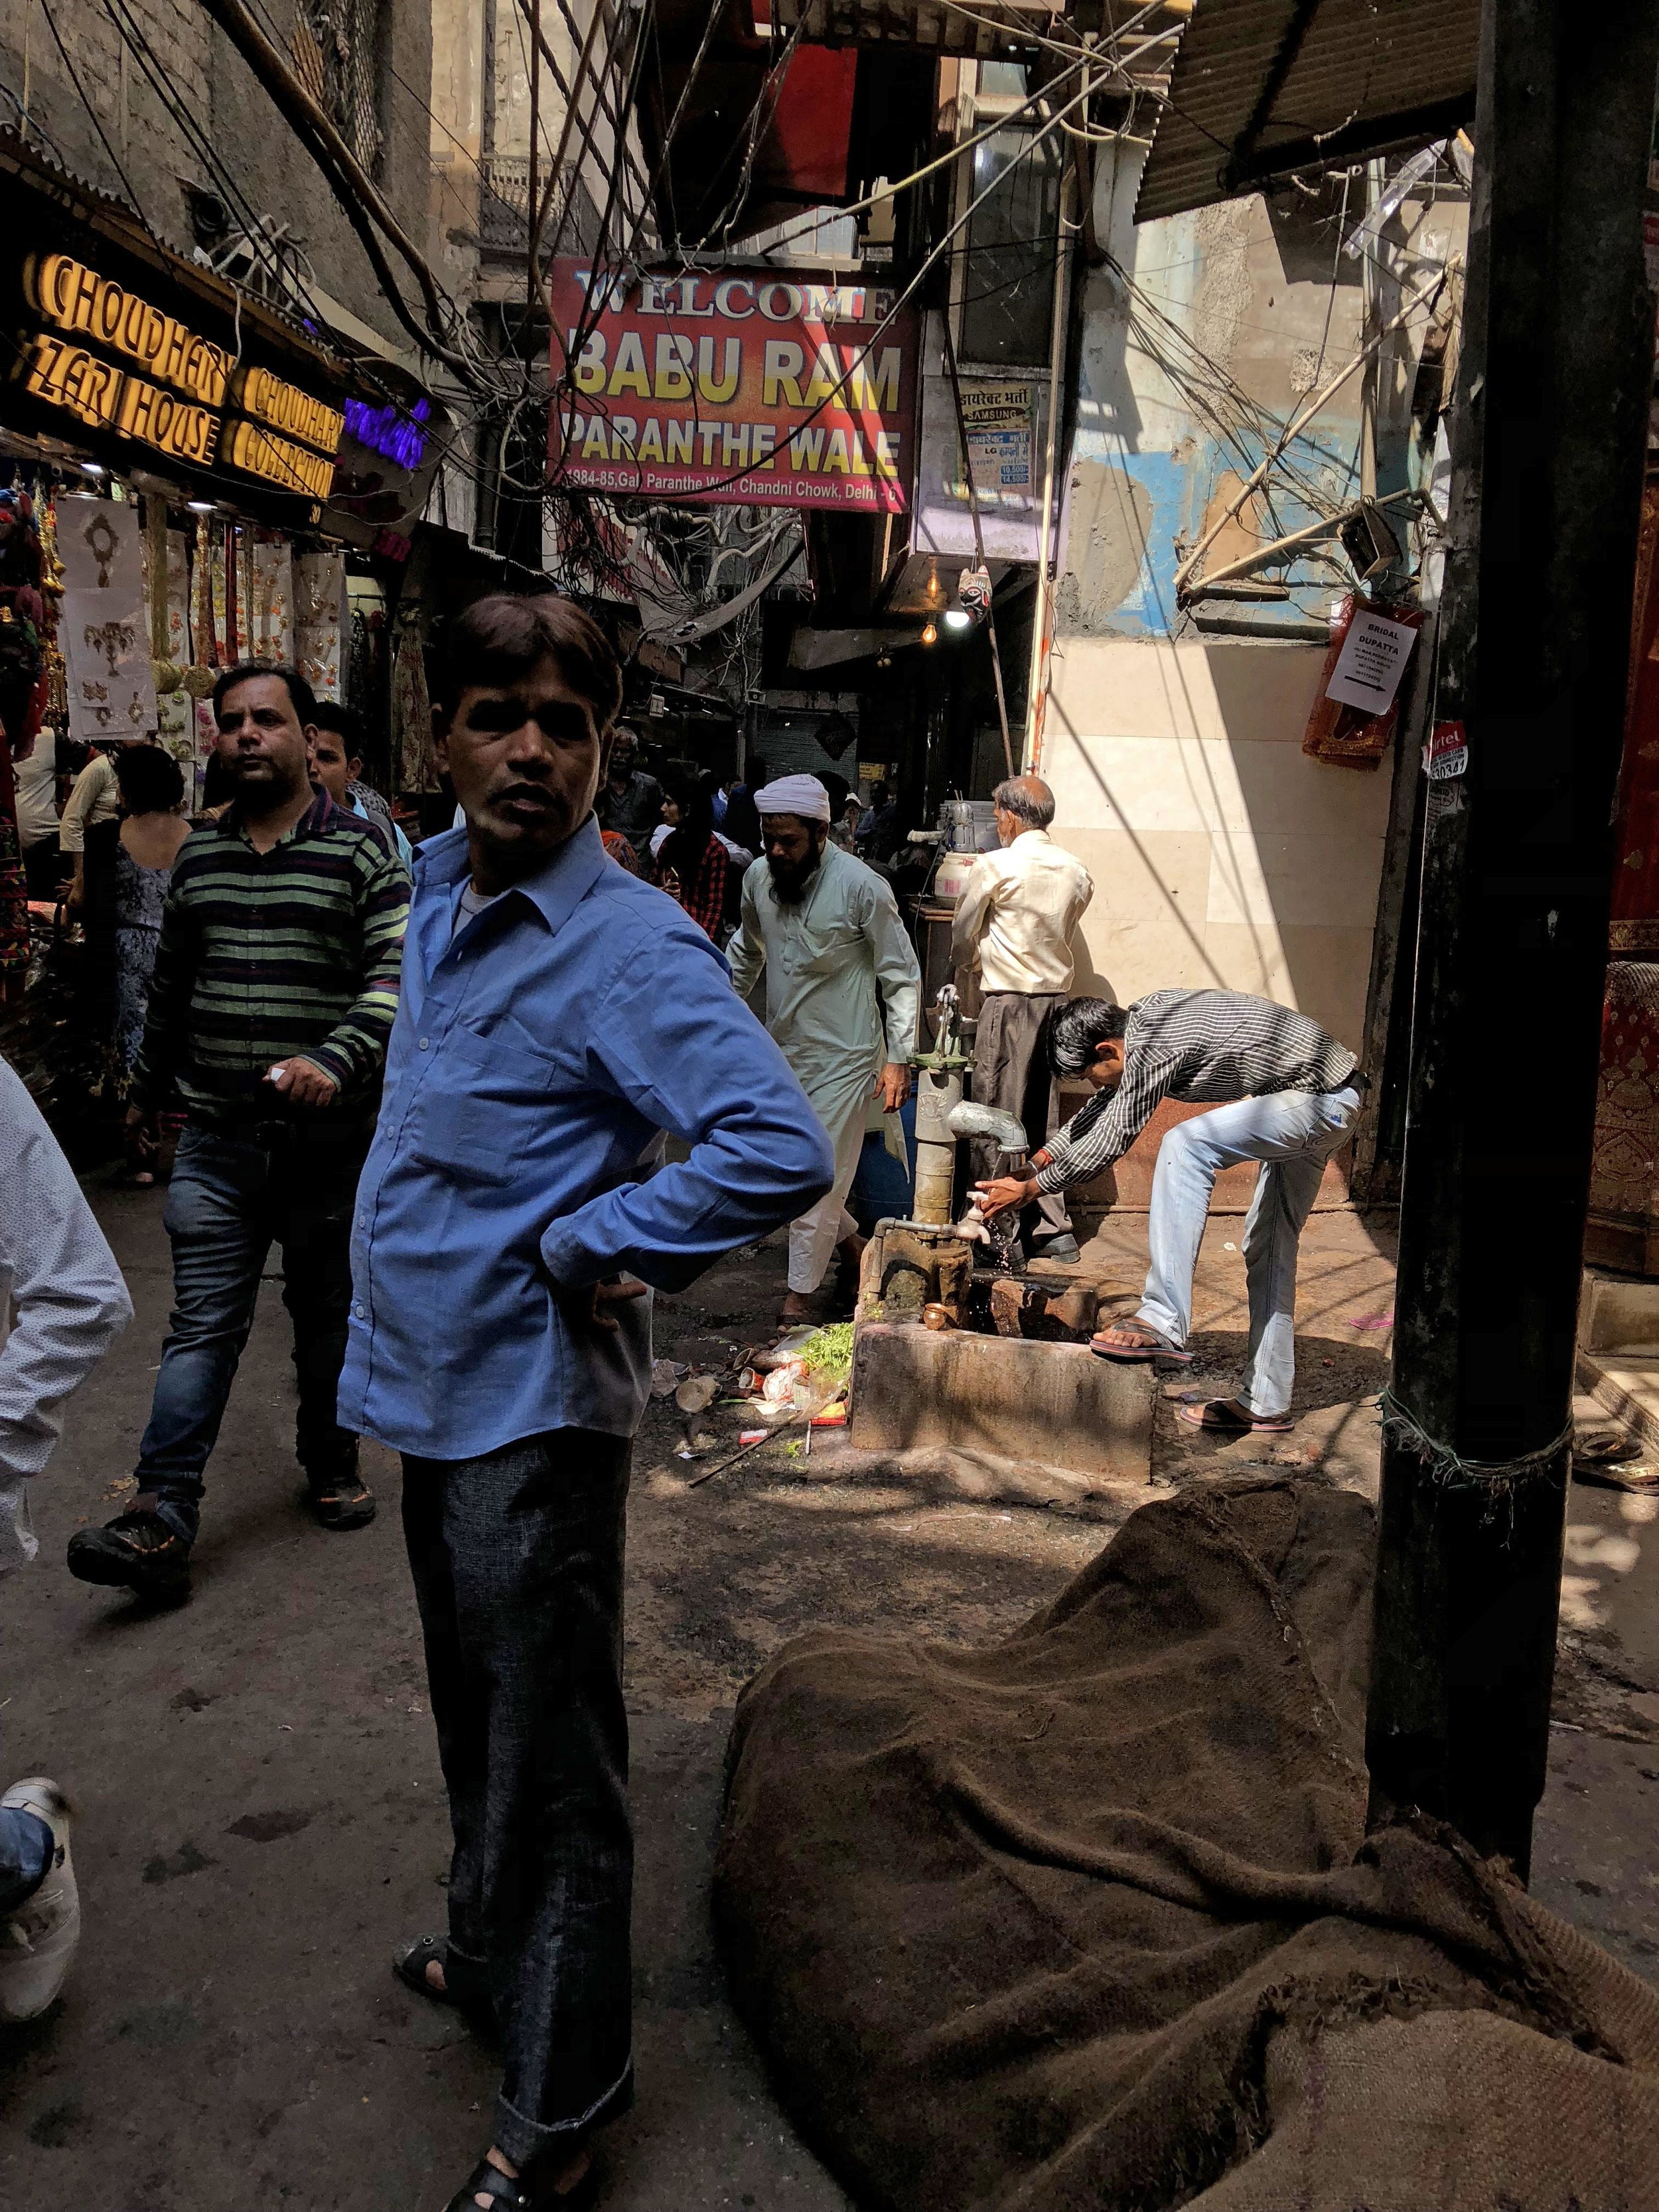 The hustle and bustle of Chandni Chowk in Old Delhi